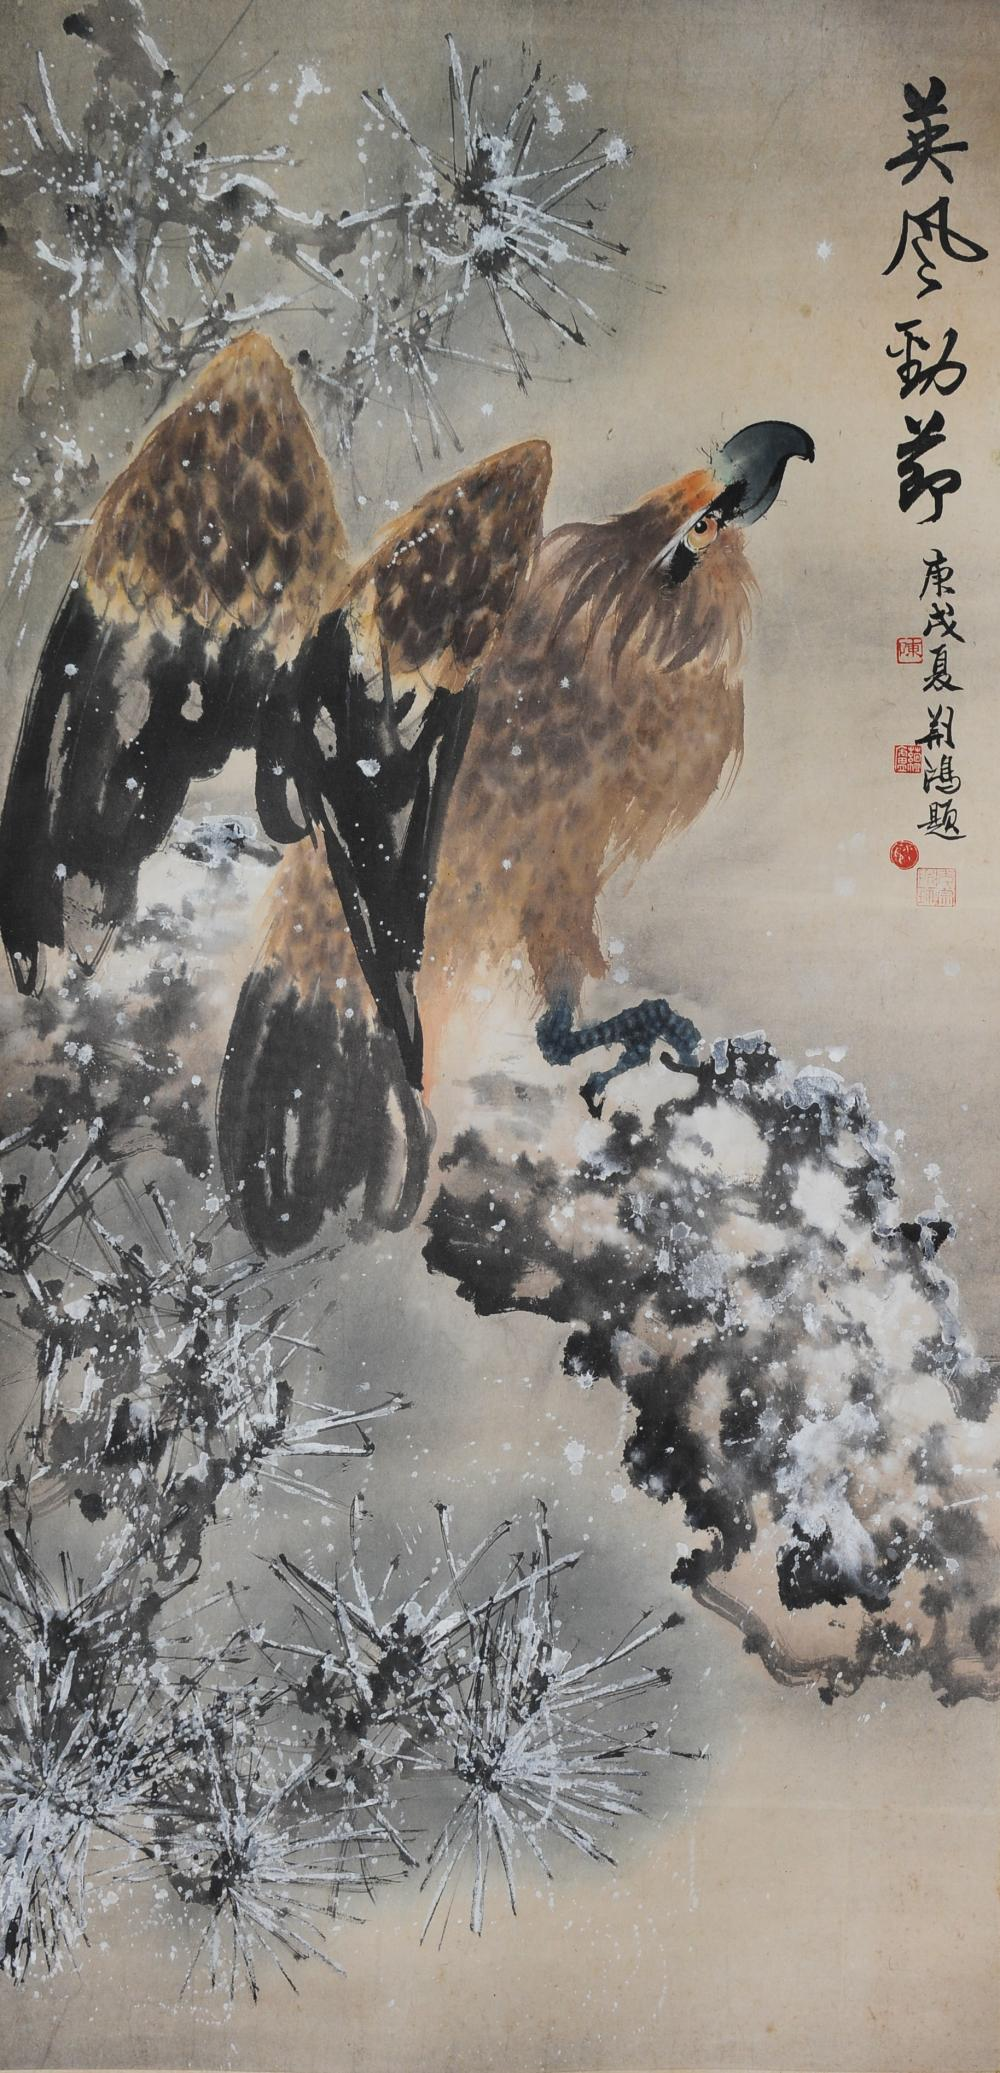 PAINTING OF EAGLE IN SNOWY PINE BY ZHAO SHAOANG